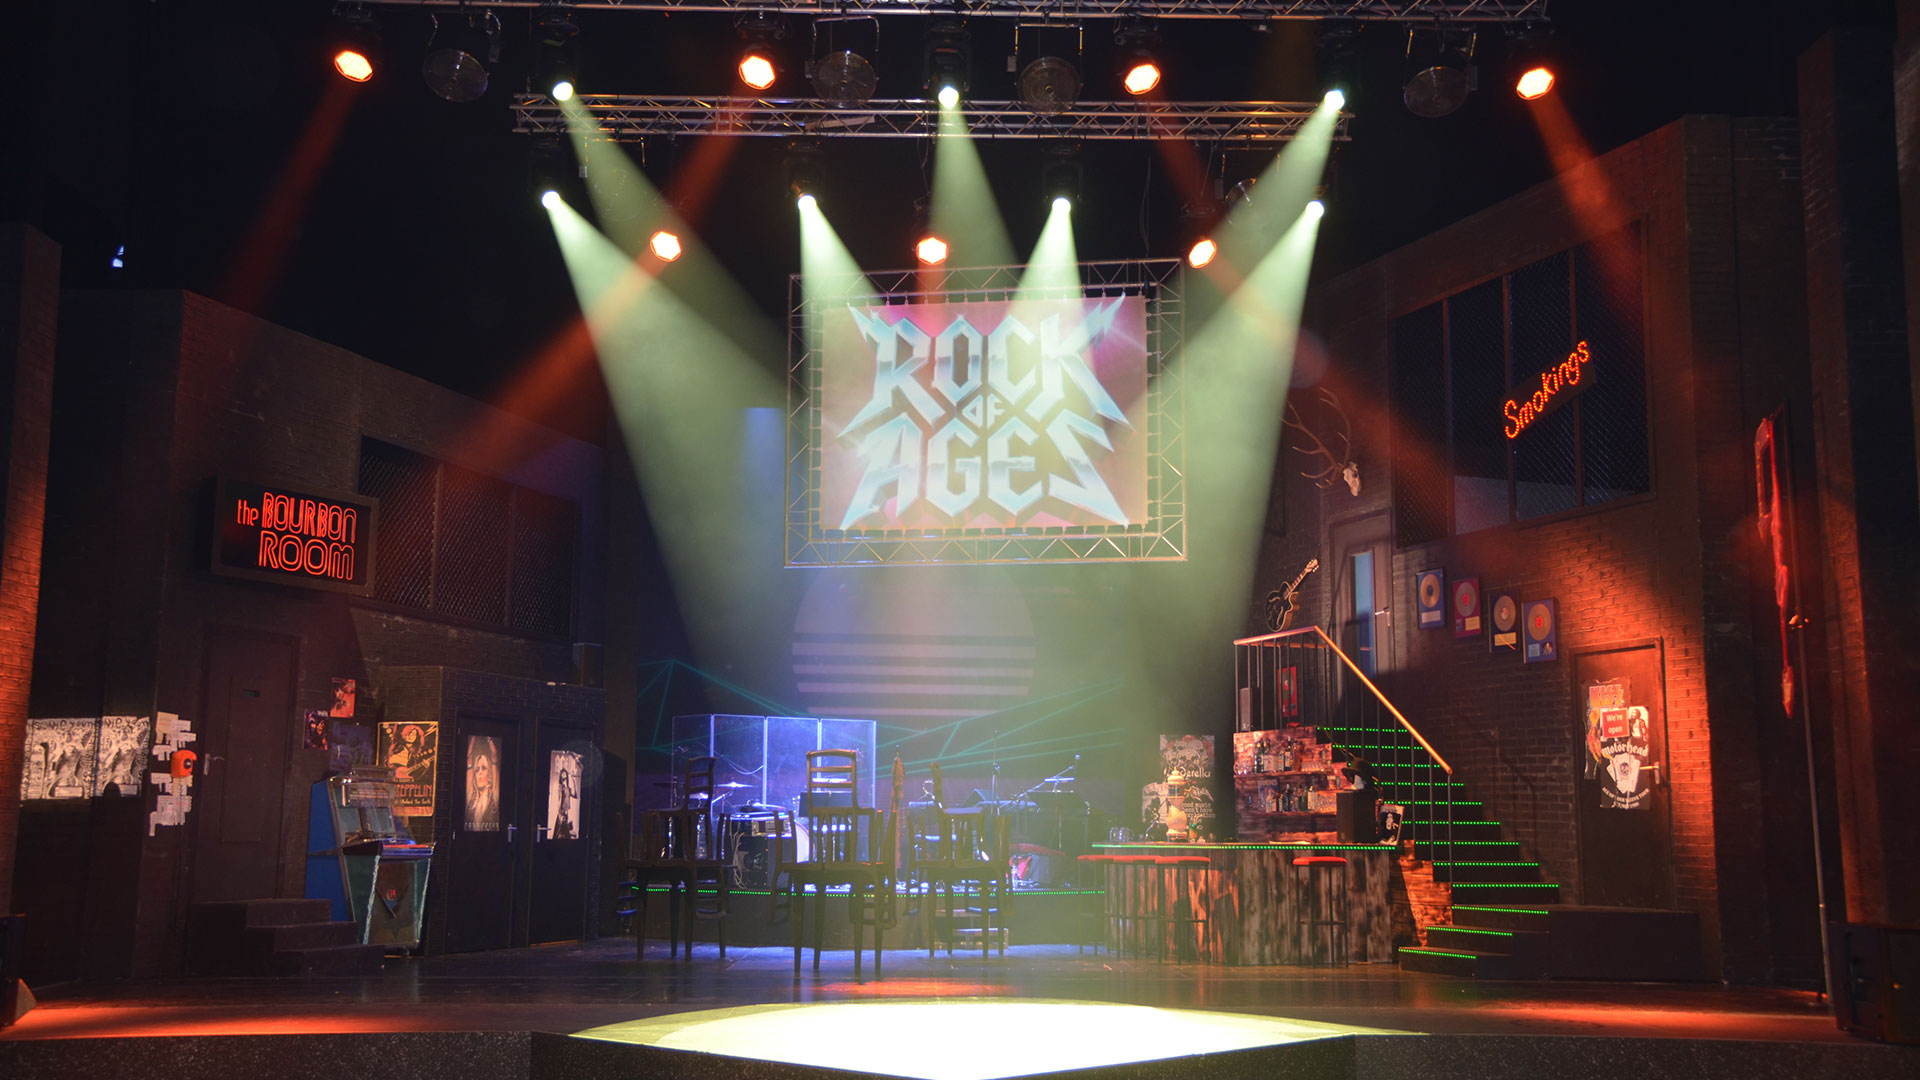 Theater-Ulm_Rock_of_Ages_P18_1.jpg